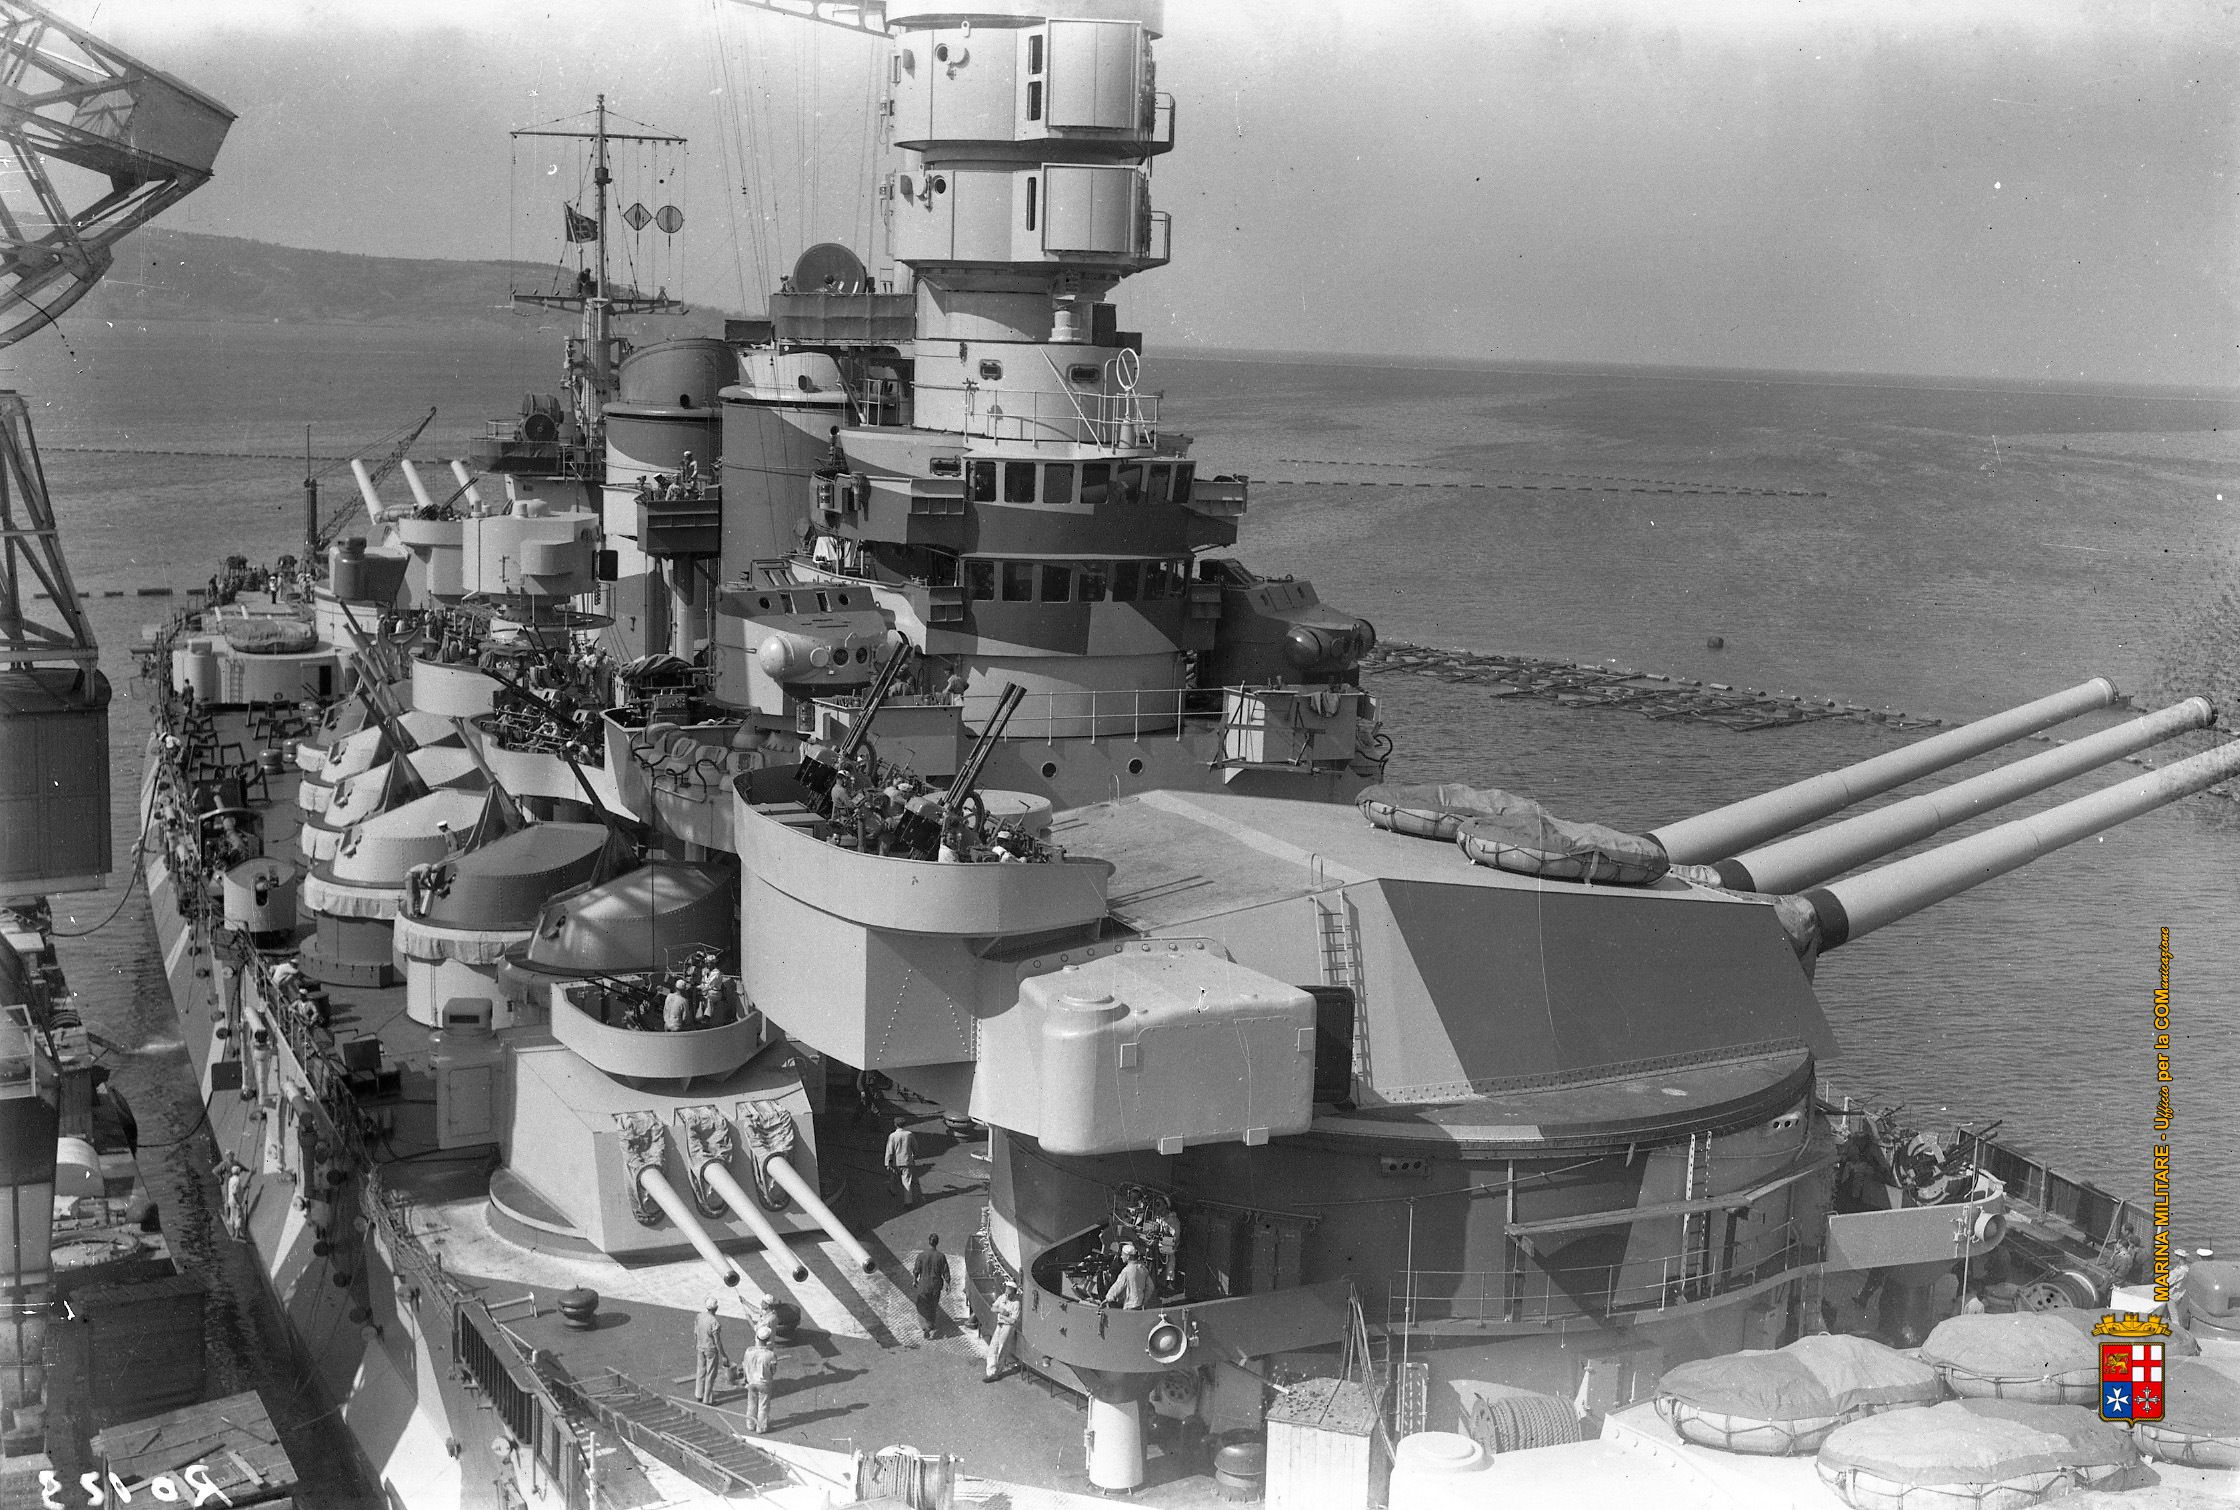 15 in battleship Roma, sister of Vittorio Veneto (see nearby): she was sunk en route to Malta in September 1943 by German radio controlled glider bombs to prevent her surrendering.  Third sister Italia (formerly Littorio) was damaged in similar fashion.